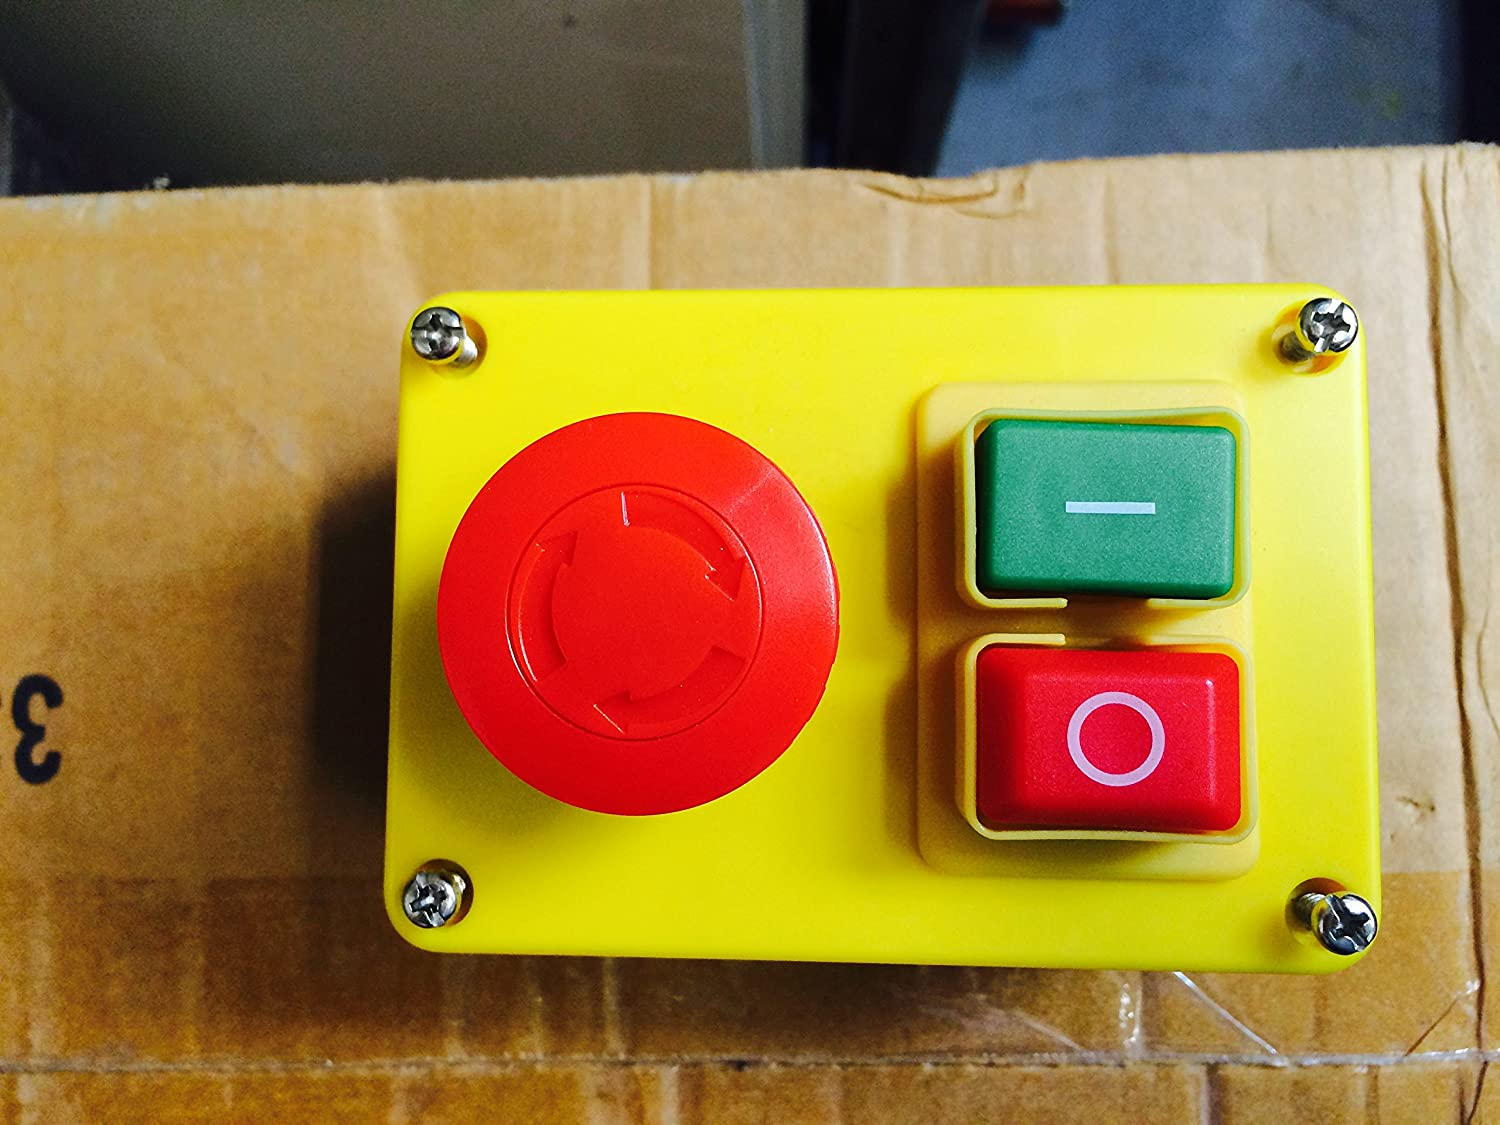 Enclosed kjd17 start stop safety switch with separate emergency enclosed kjd17 start stop safety switch with separate emergency stop button amazon diy tools cheapraybanclubmaster Choice Image